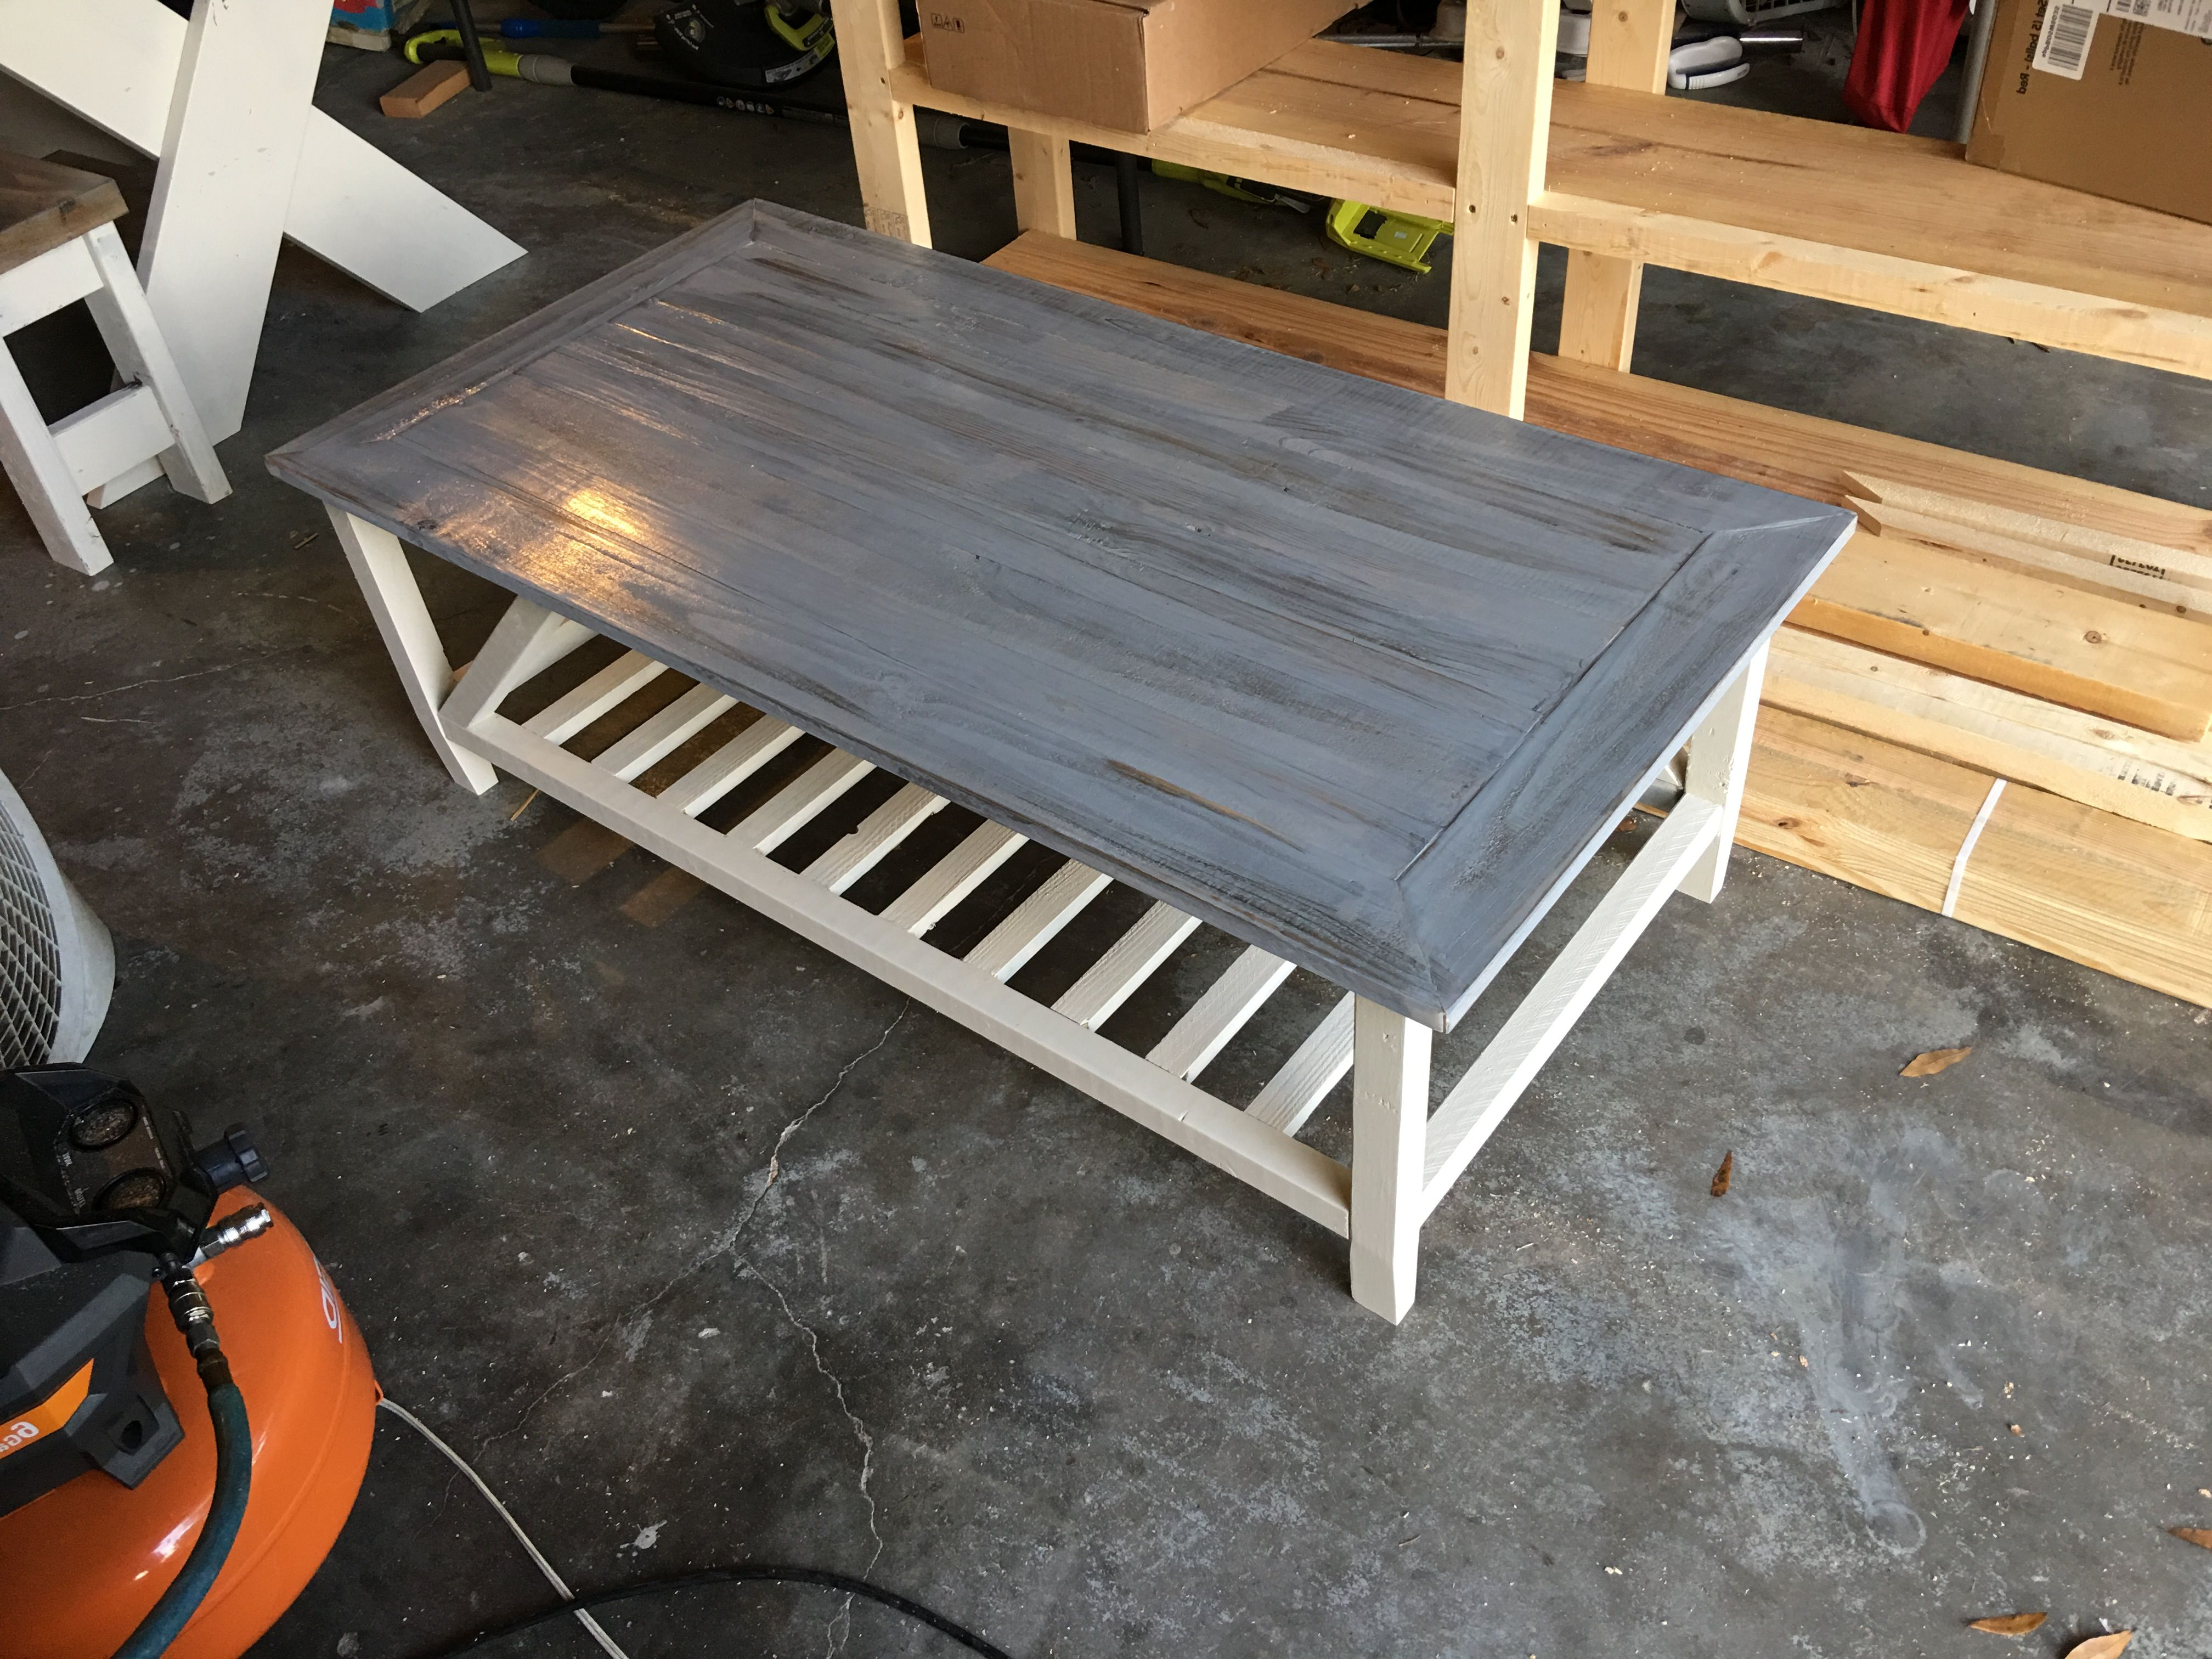 Stack Hi Gloss Wood Coffee Tables Throughout Popular 2' X 4' Coffee Table W A Dark Jacobean Base Stain And A Grey Top (View 9 of 20)